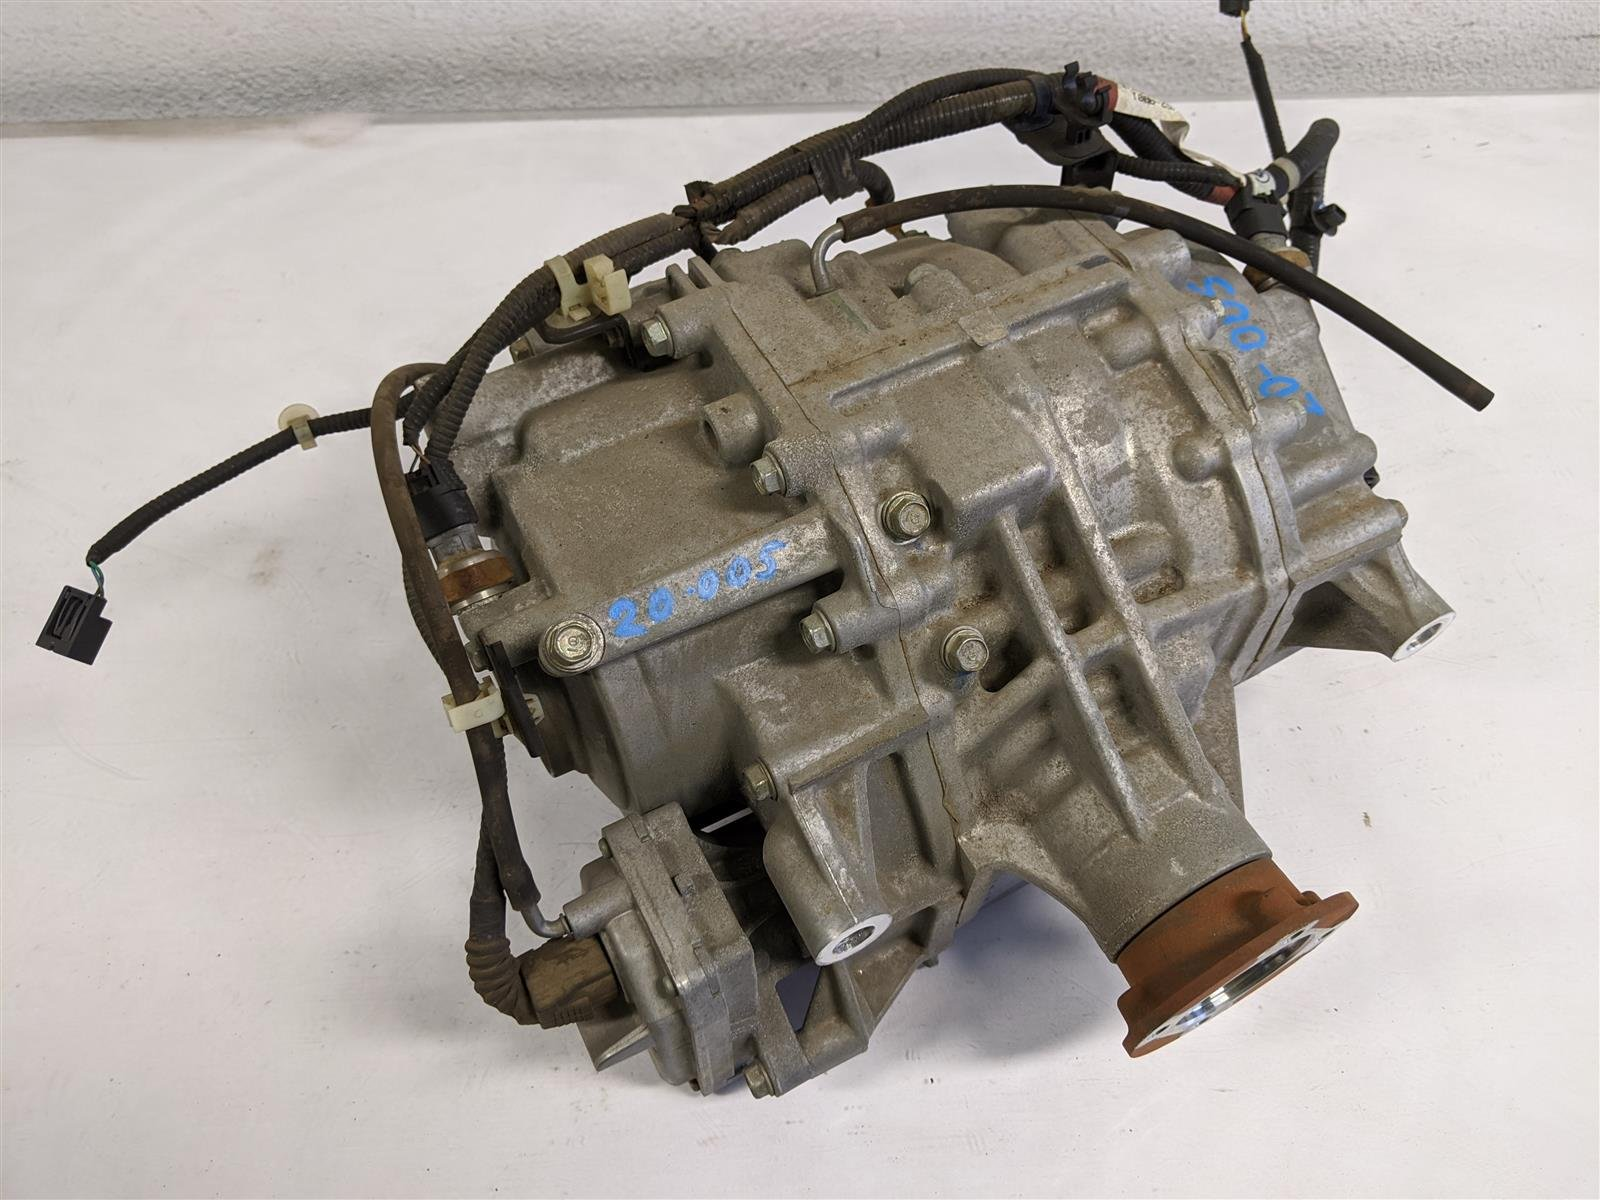 2017 Honda Ridgeline Rear Differential Assy Replacement